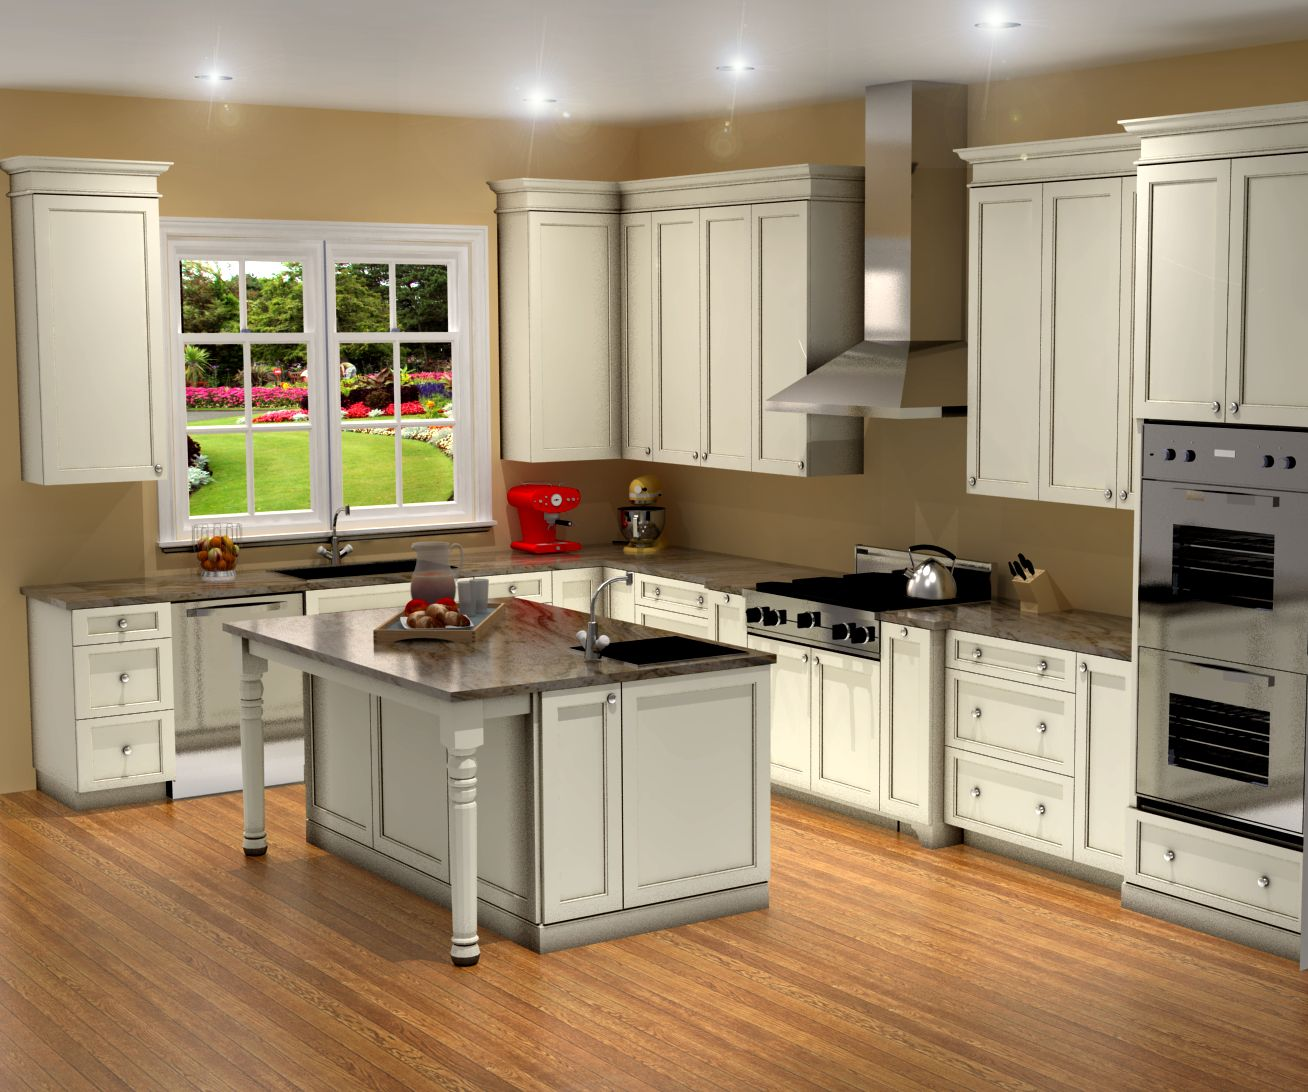 Traditional white kitchen design 3d rendering nick for Kitchen designs with white cabinets